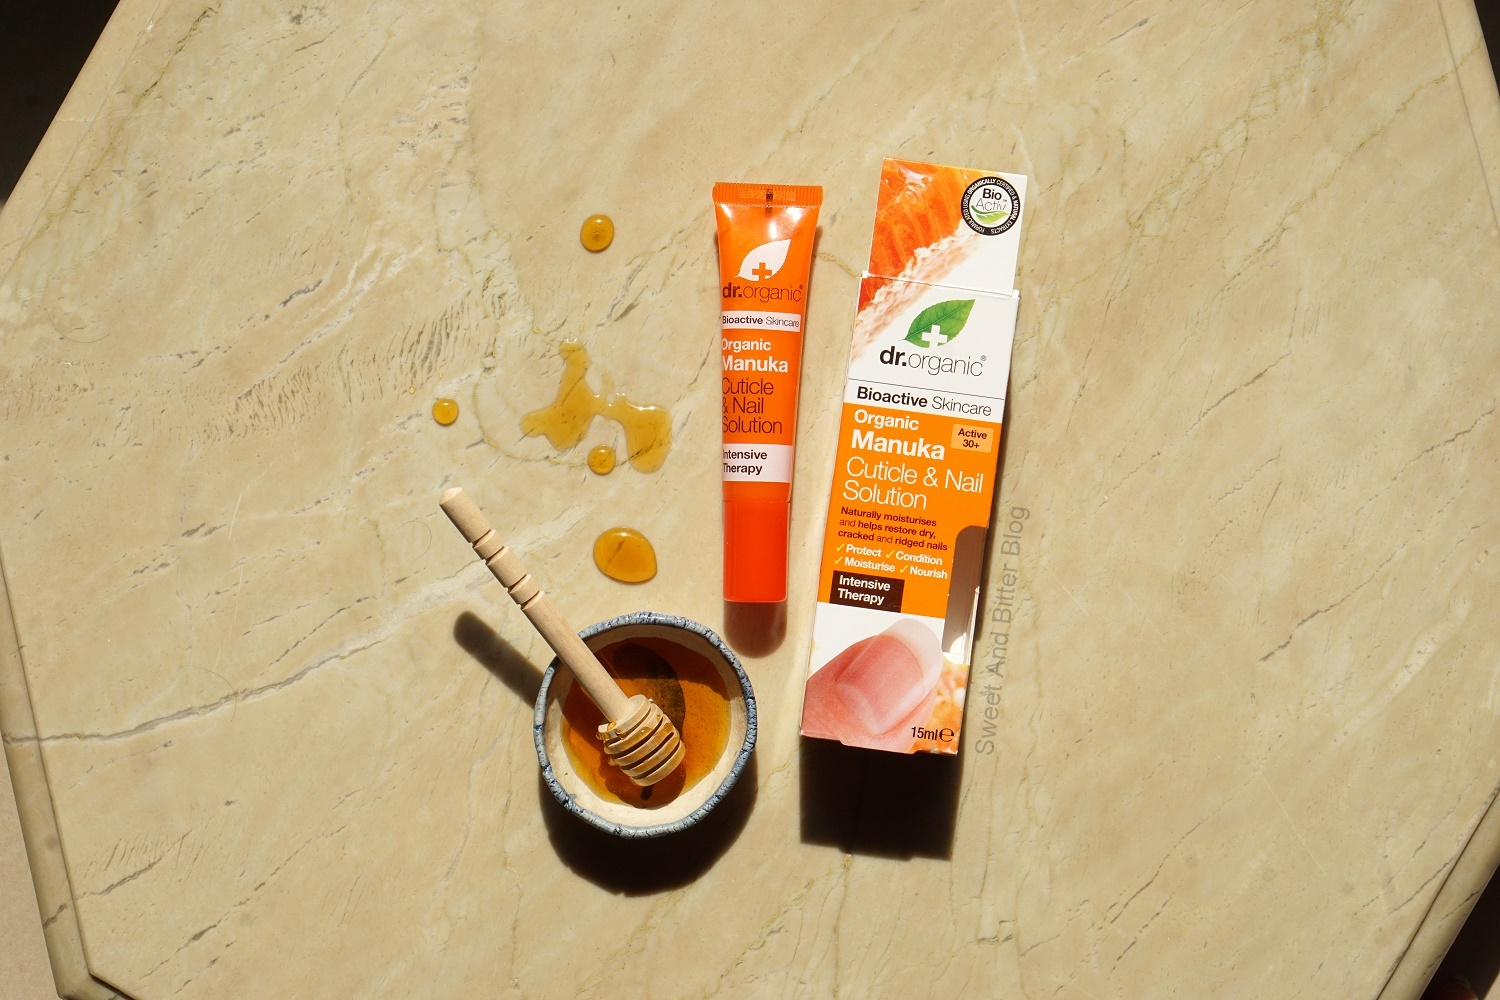 Dr Organic Manuka Honey Cuticle and Nail Solution Review India